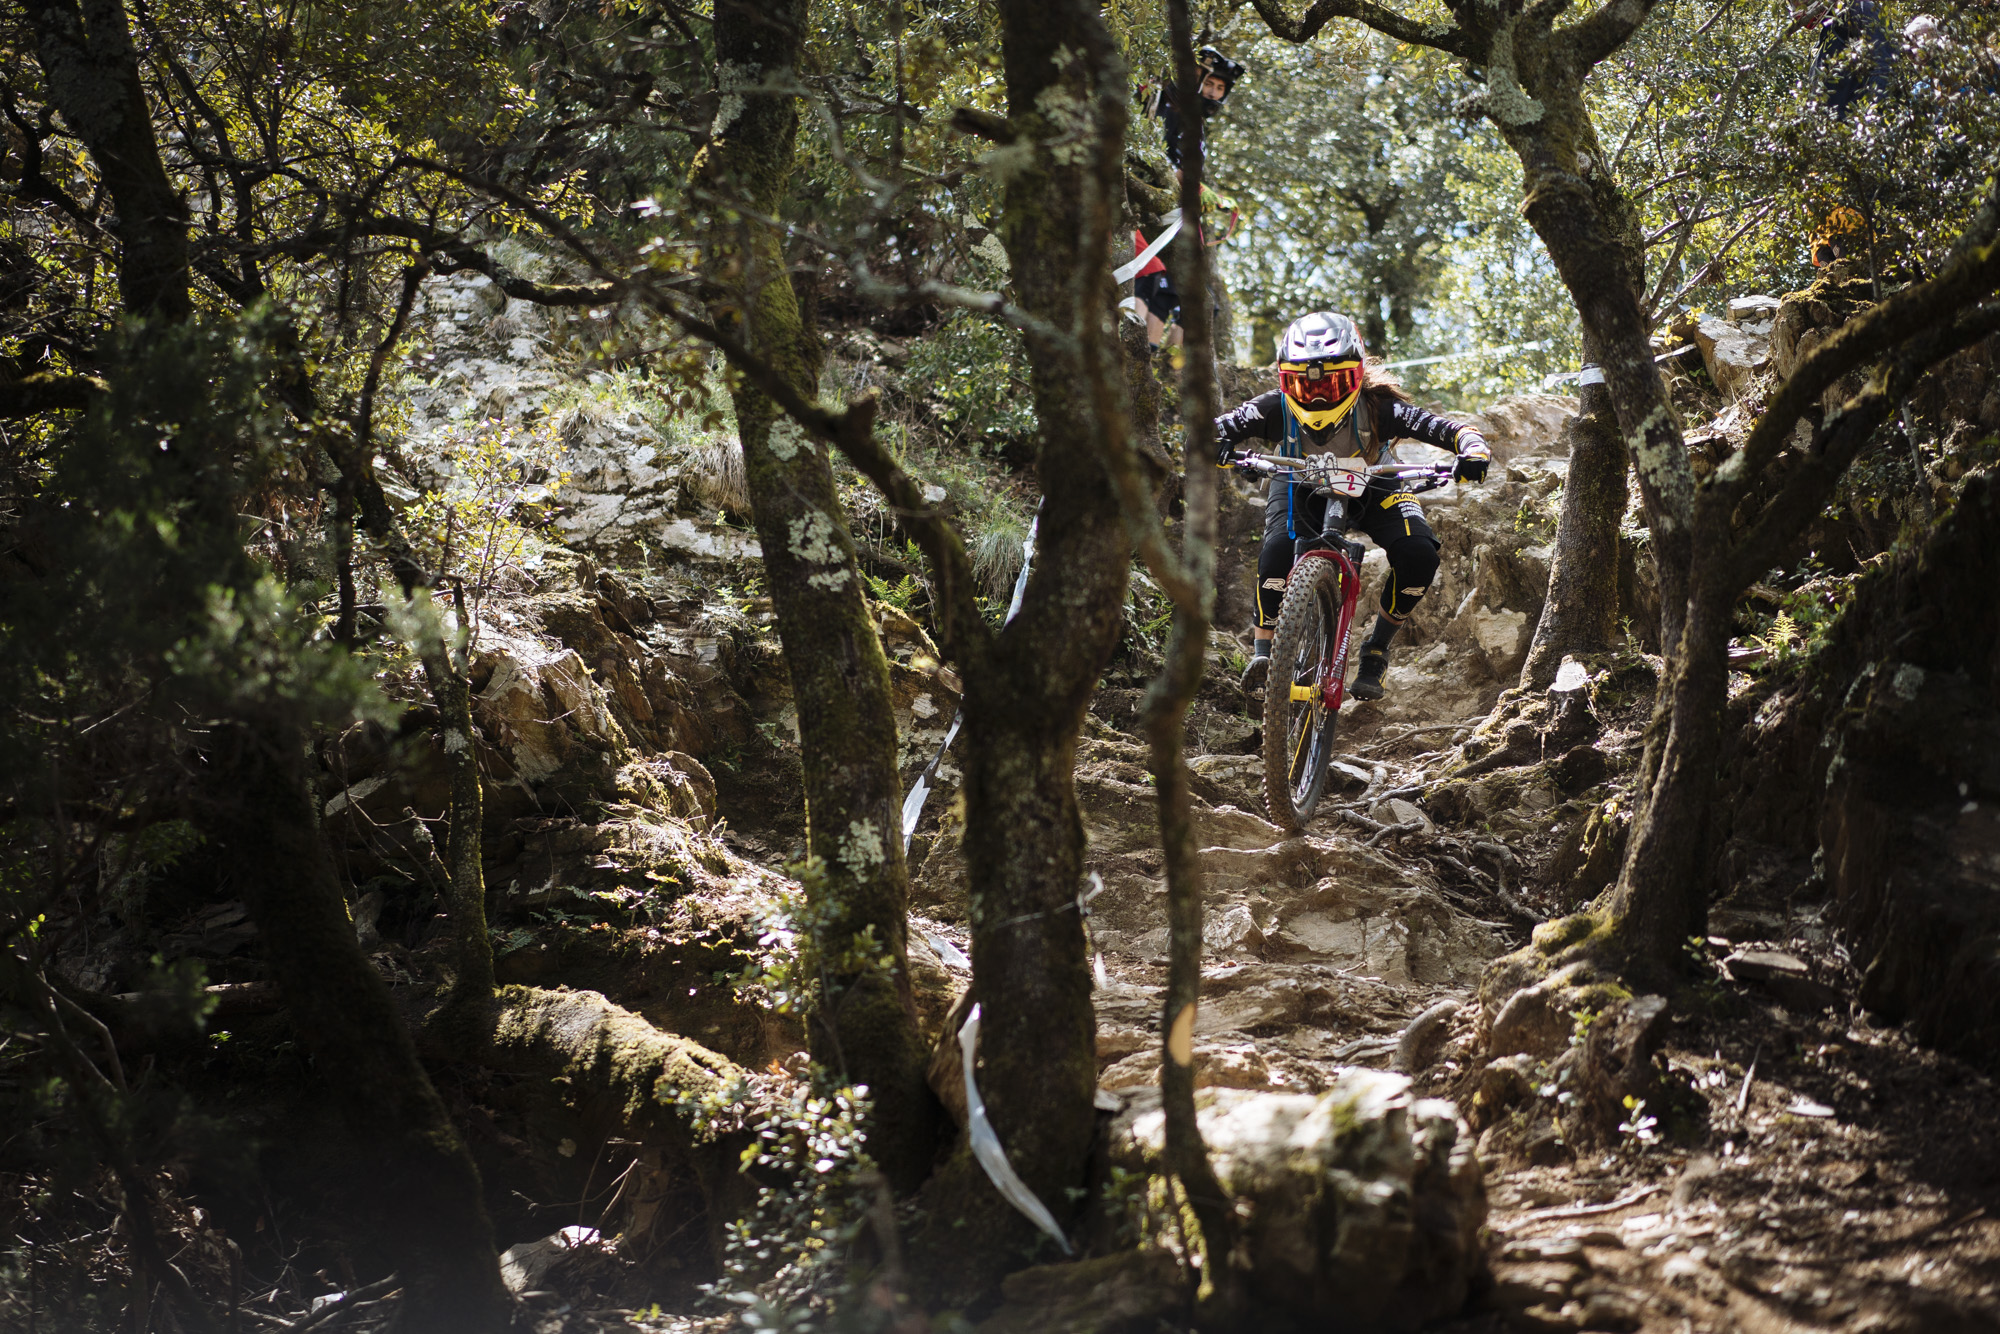 Calendario Gare Mtb 2020.Enduro World Series Calendario 2020 Mtb Test Central